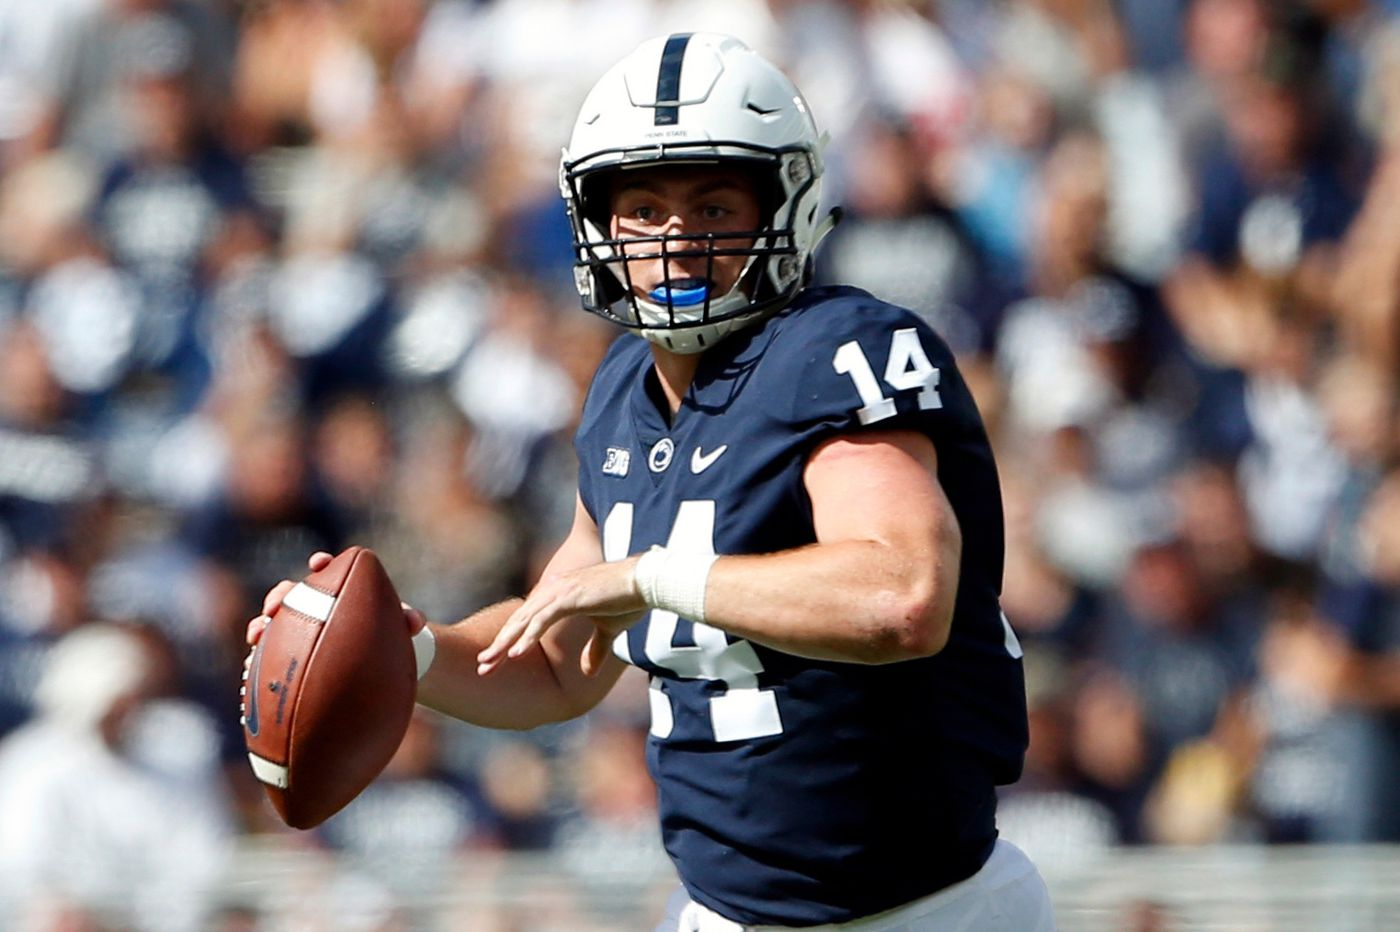 Sports betting: College football over/under win totals out for Penn State, Temple